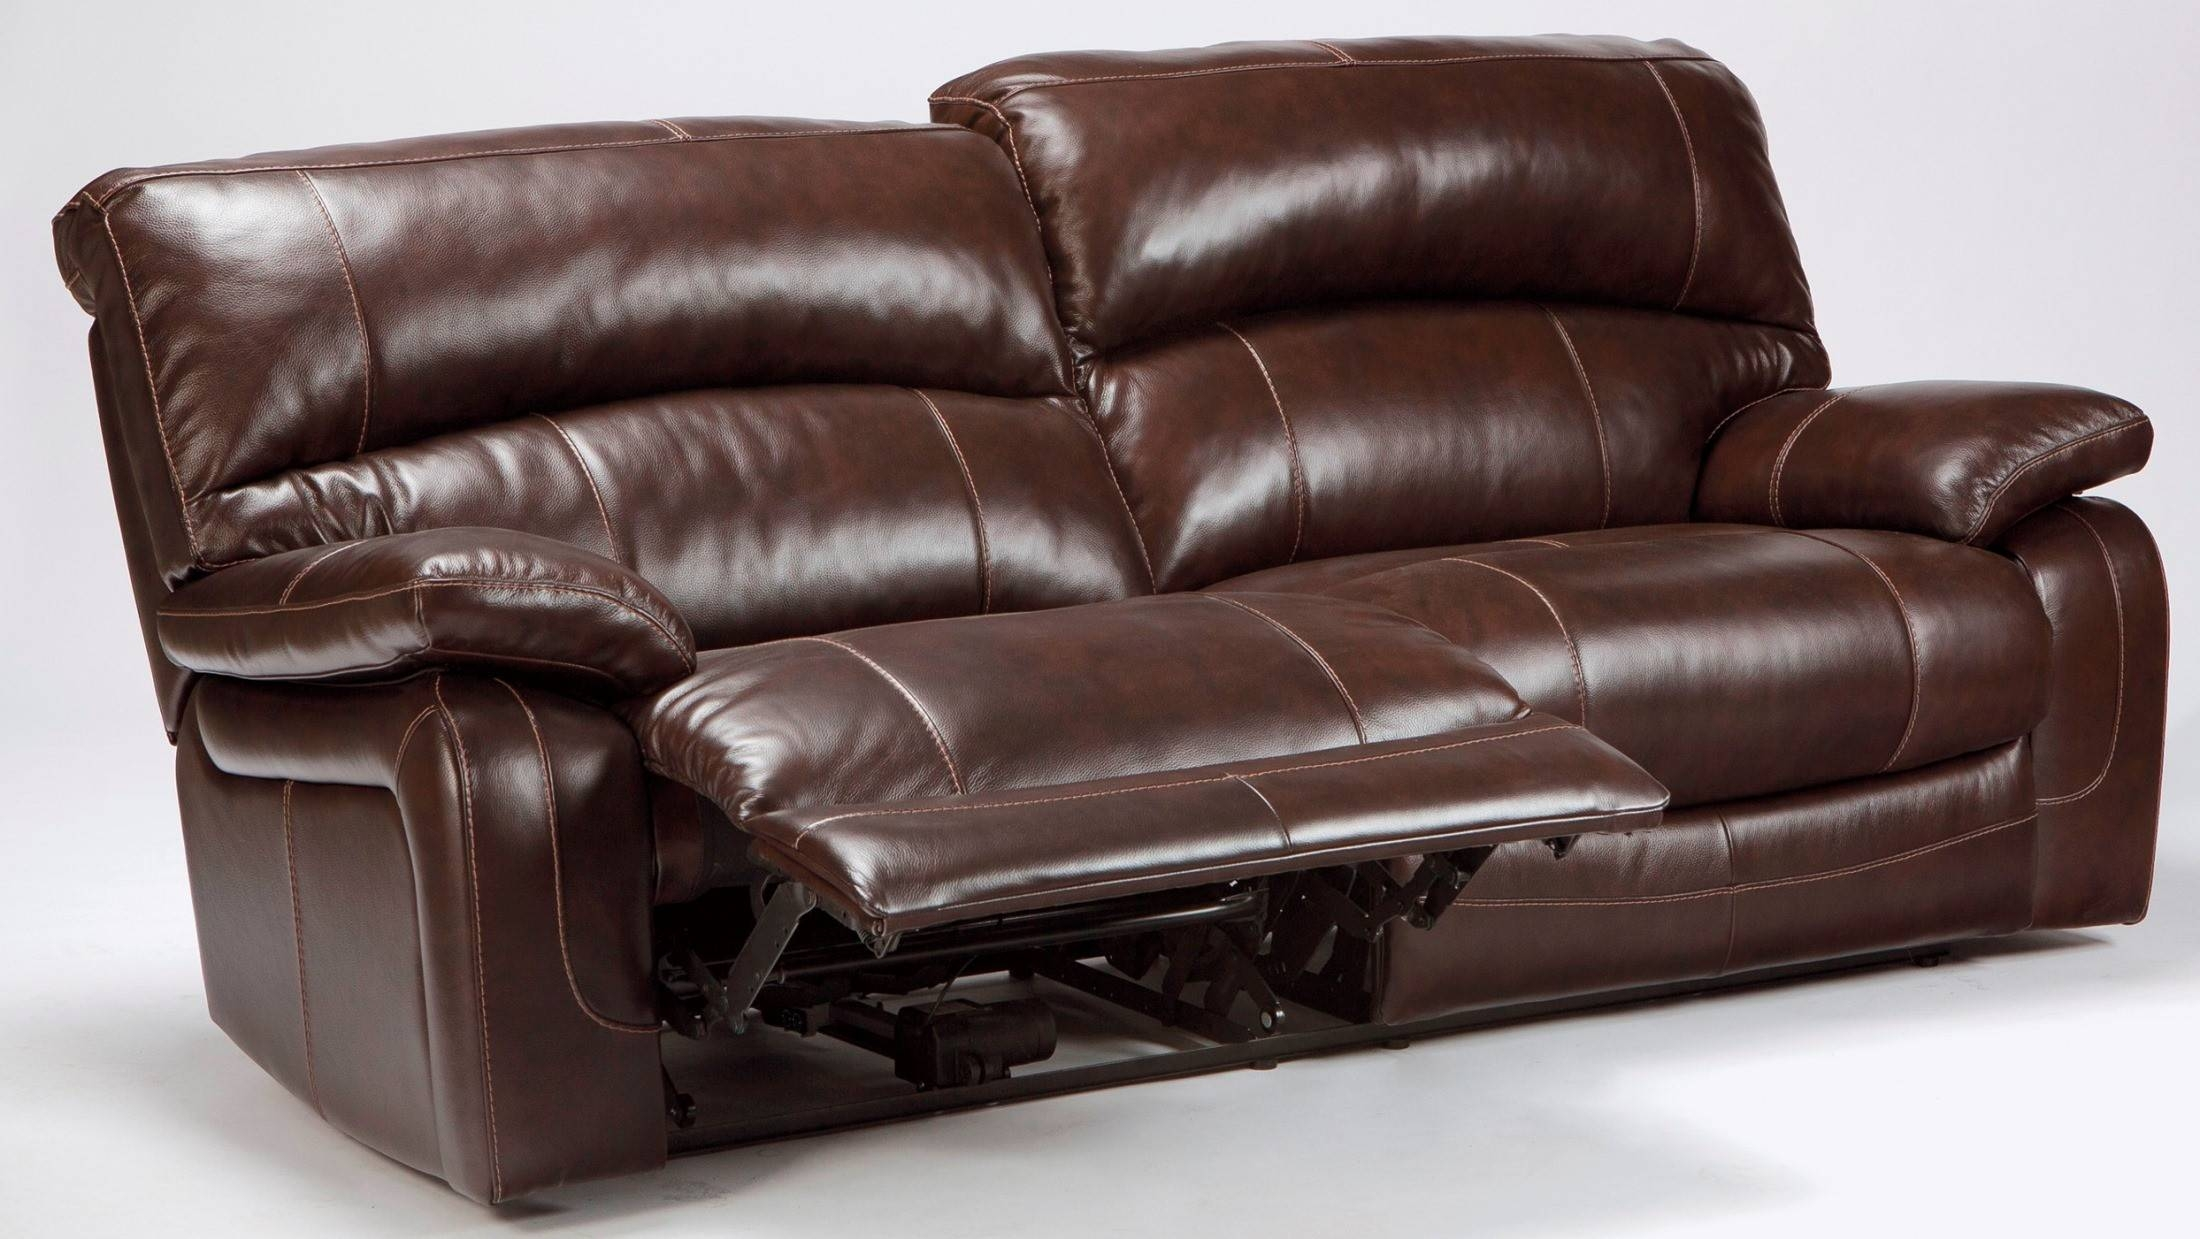 Damacio Dark Brown 2 Seat Power Reclining Sofa From Ashley in 2 Seat Recliner Sofas (Image 8 of 30)